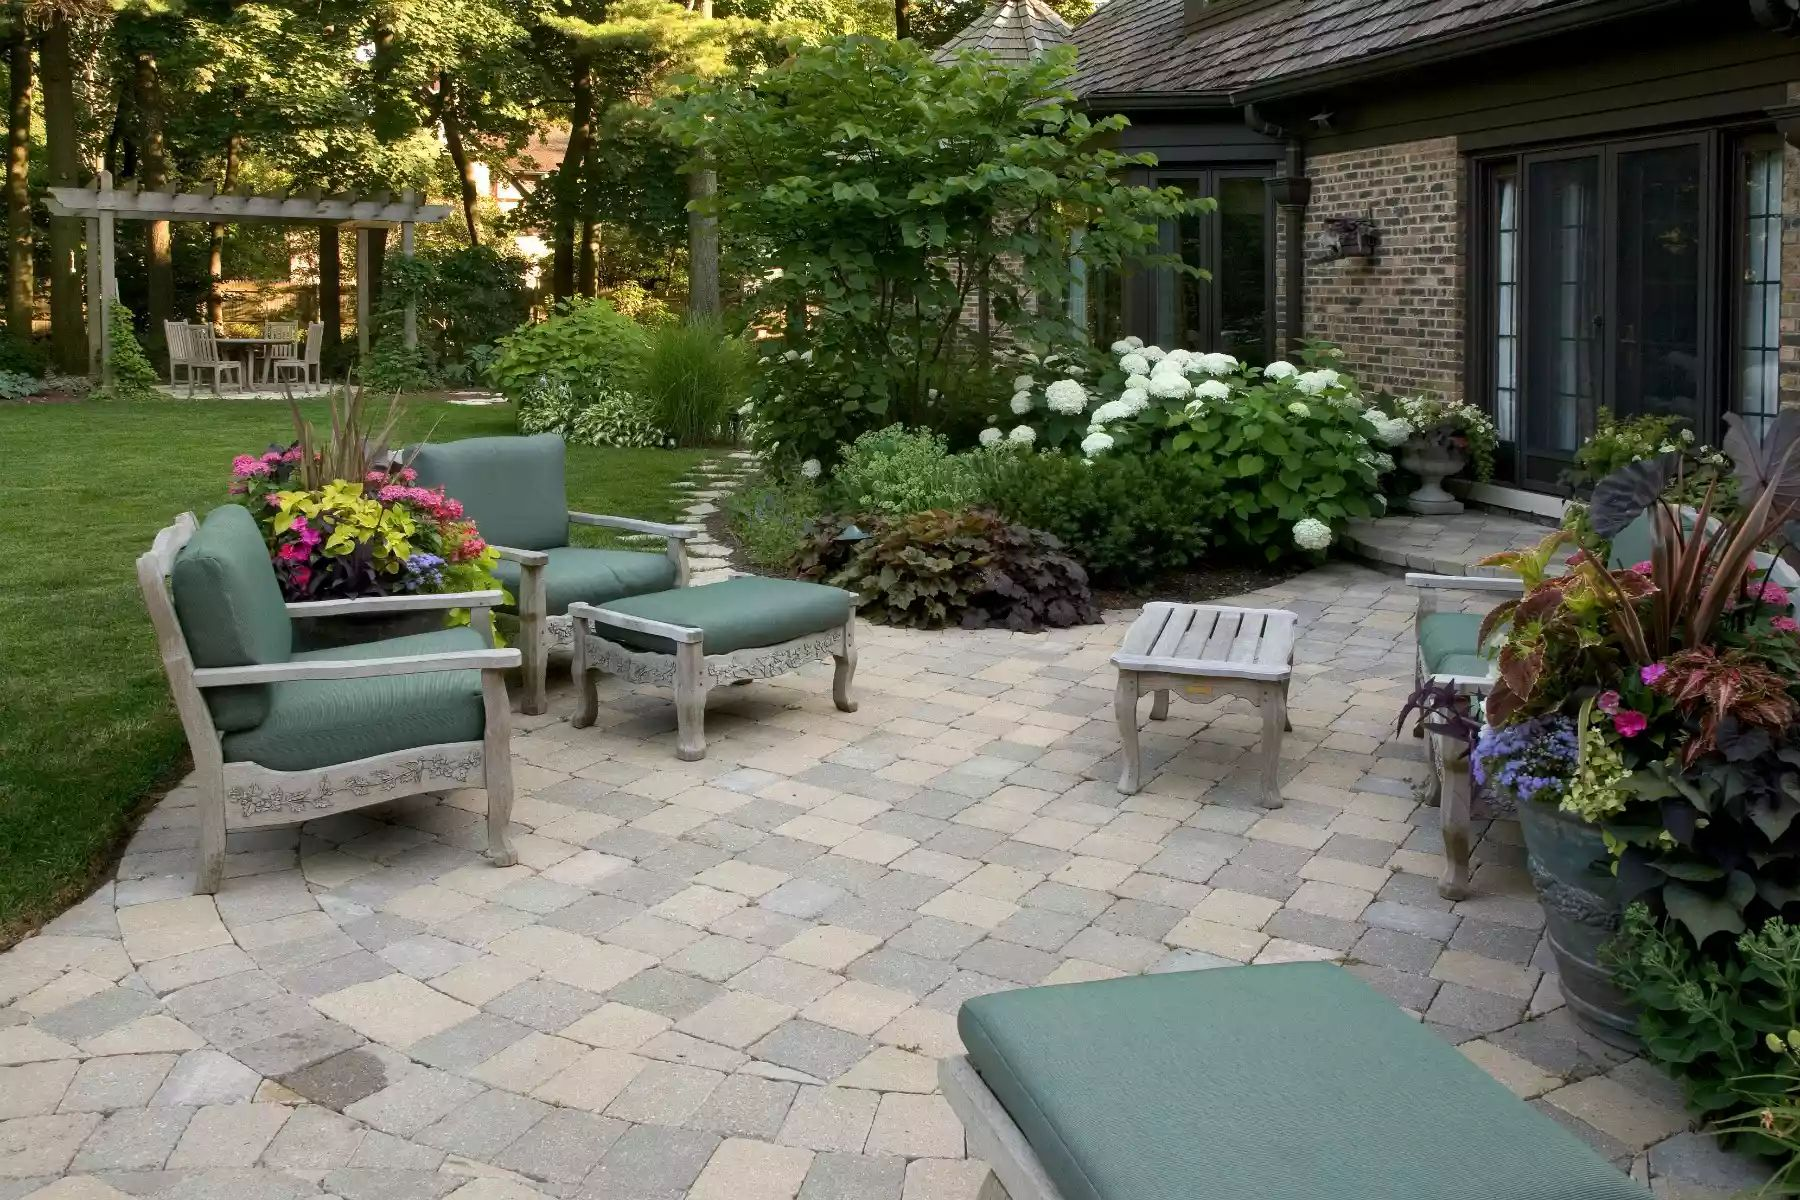 Woods' Edge Patio -   Beautiful Low Maintenance Front Yard Garden and Landscaping Ideas